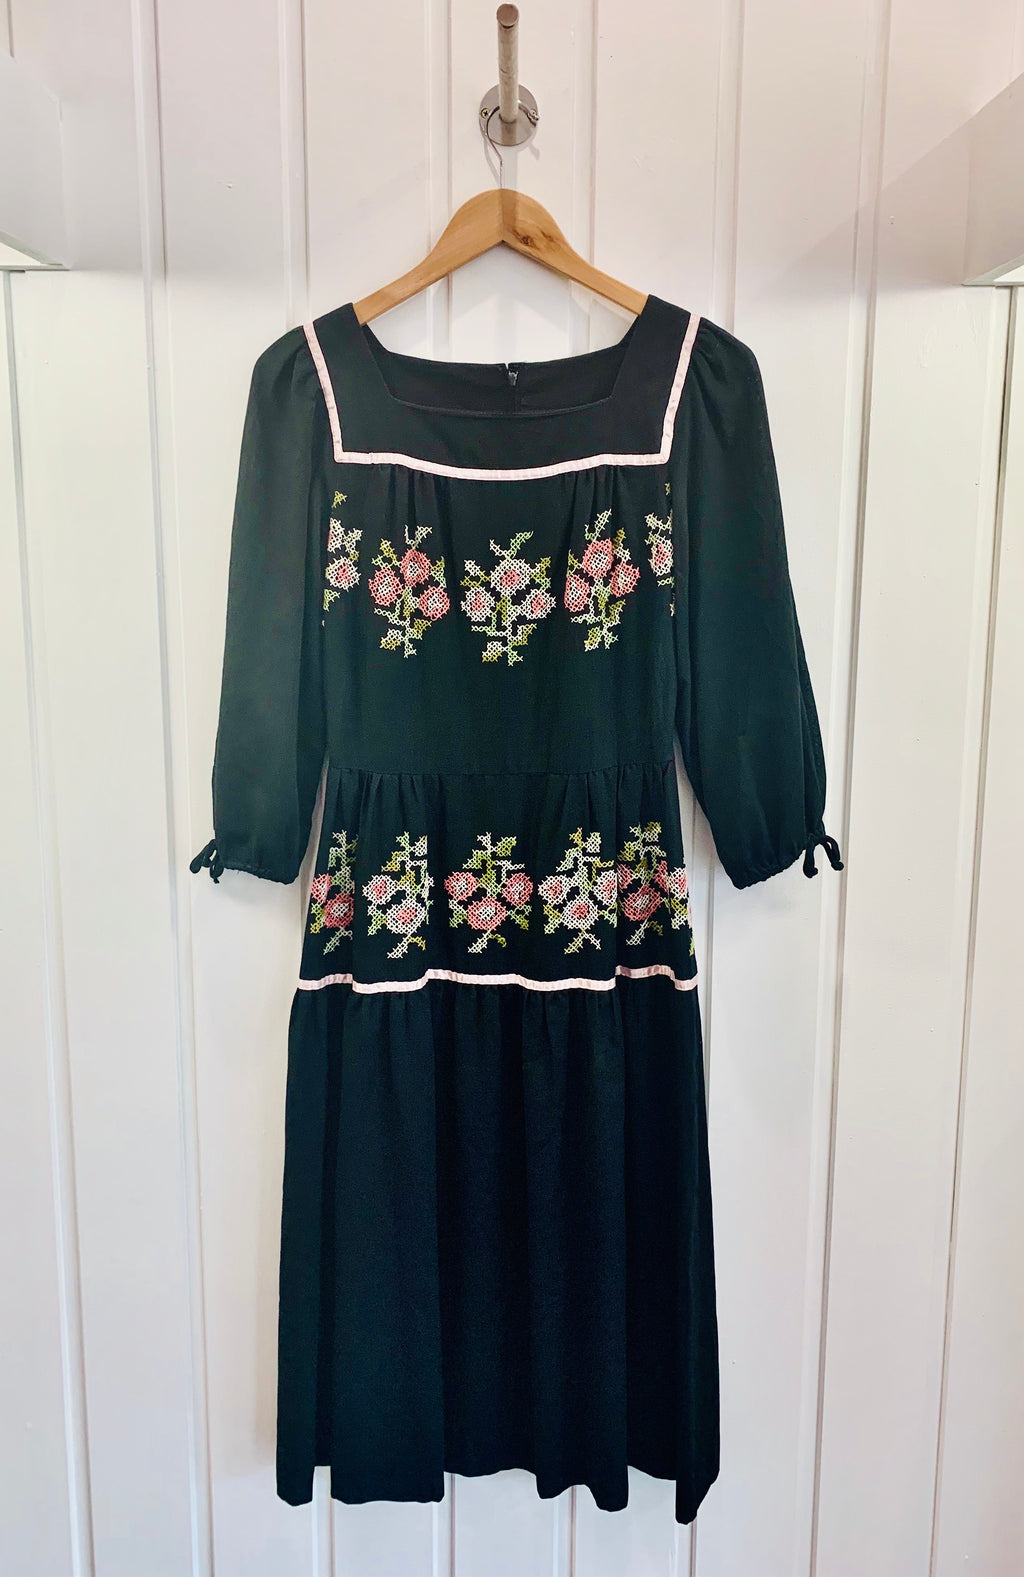 1950/60's Embroidered Peasant Dress